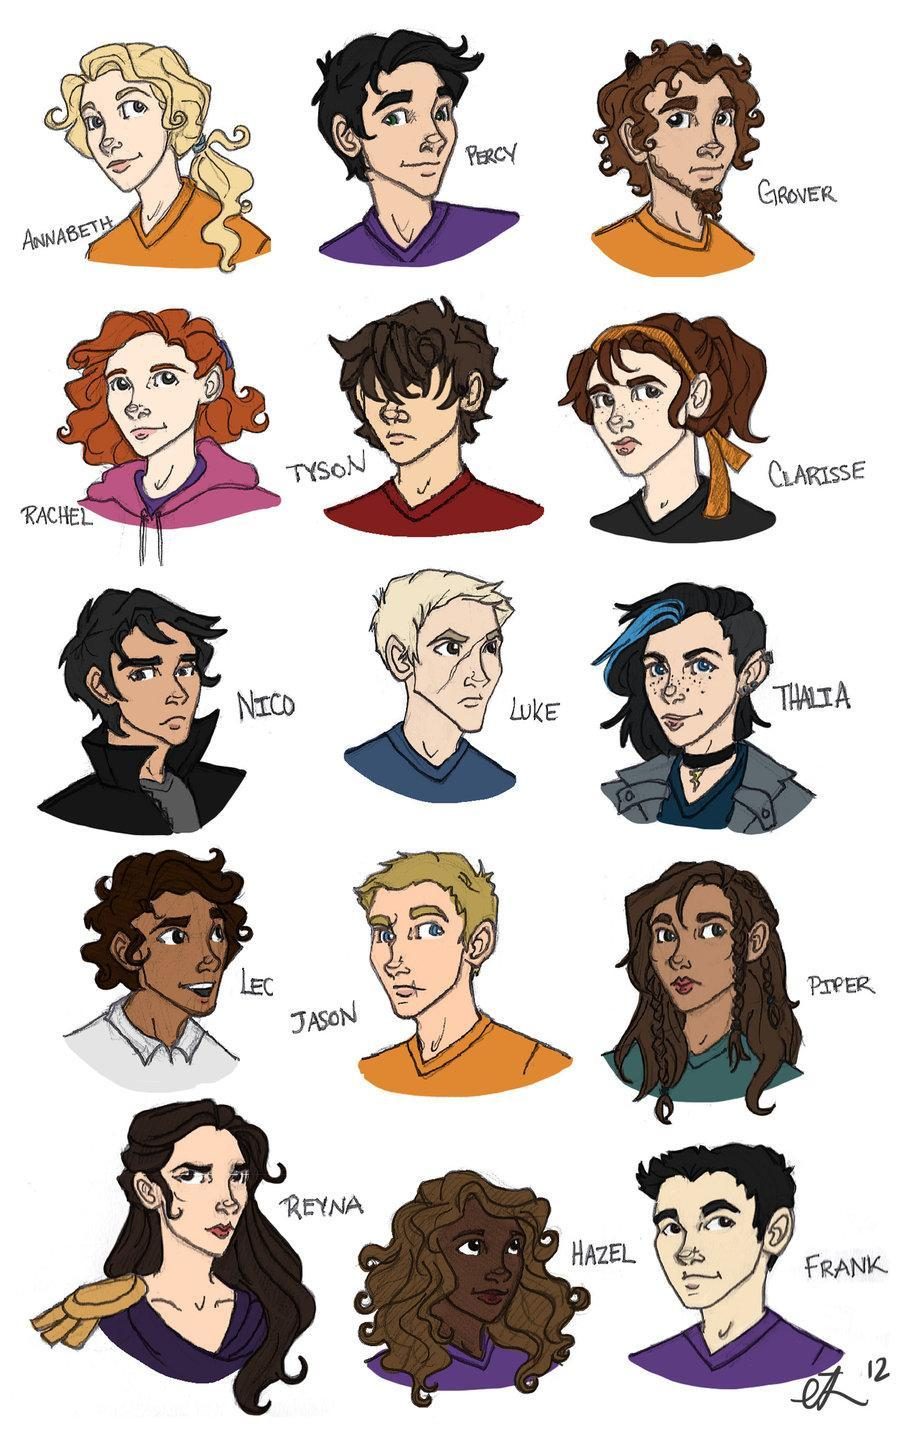 Witch character from Percy Jackson are you? ( only the main 7 )